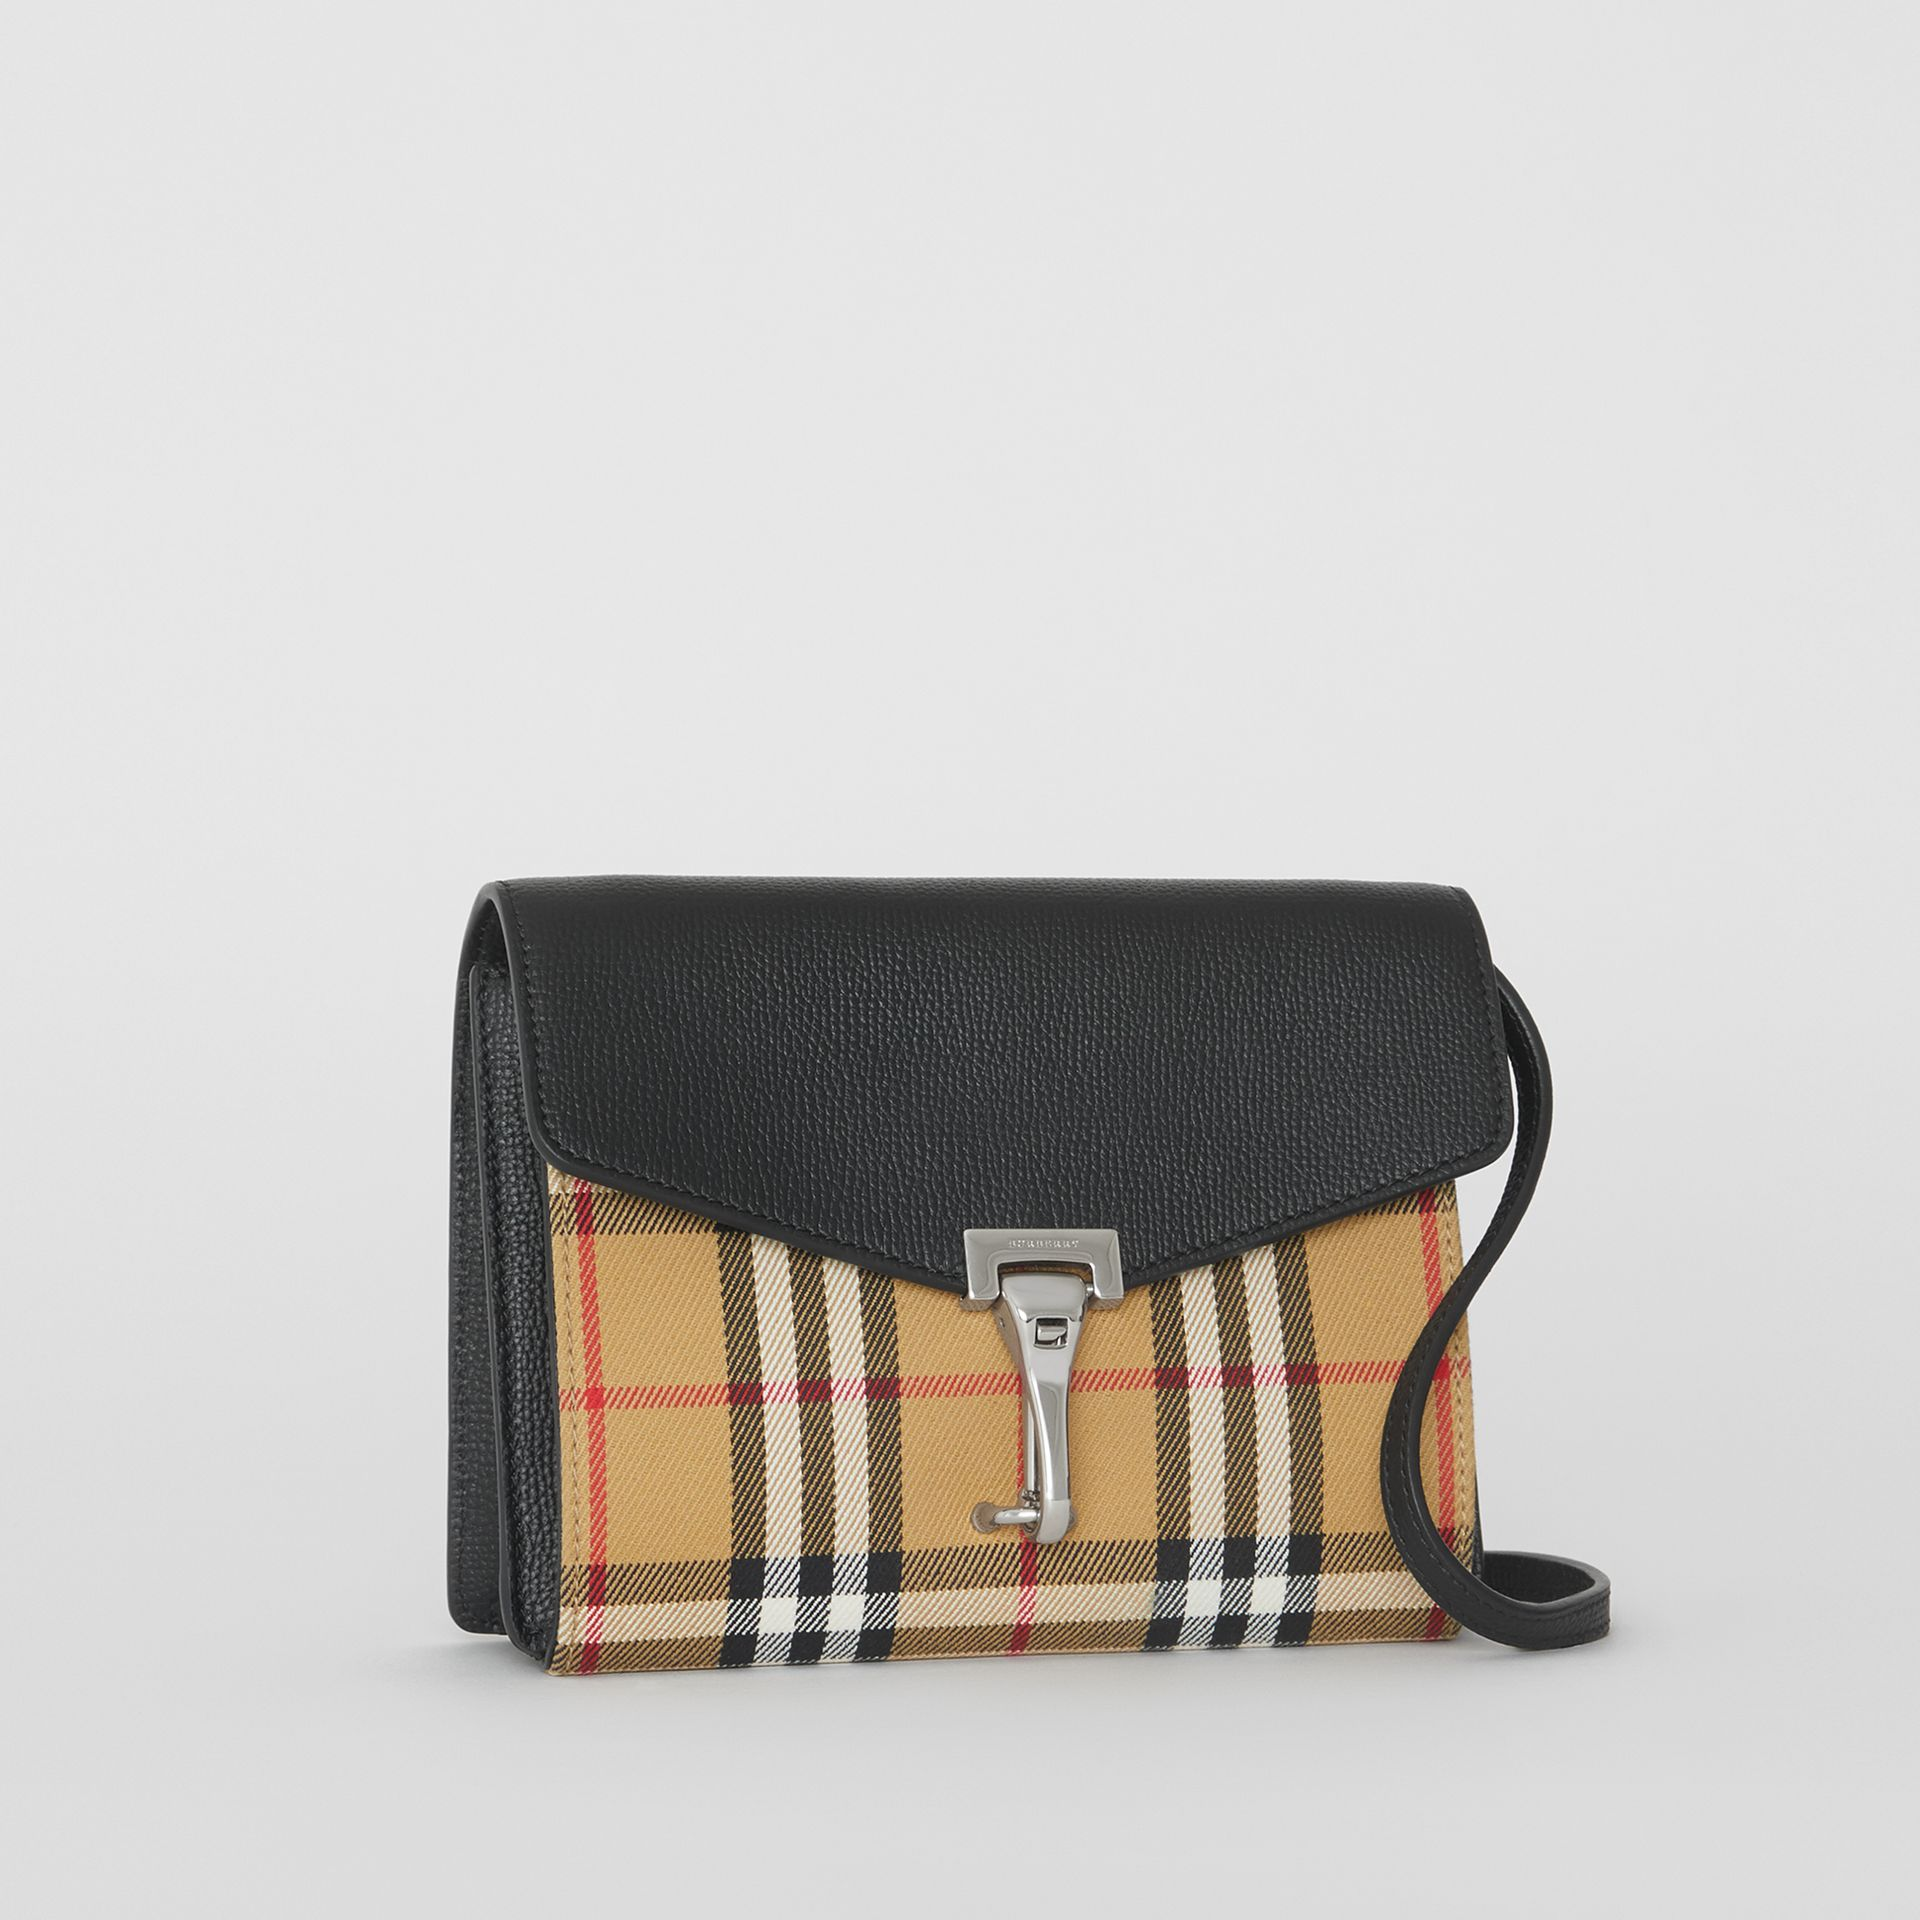 Mini Leather and Vintage Check Crossbody Bag in Black - Women | Burberry - gallery image 4